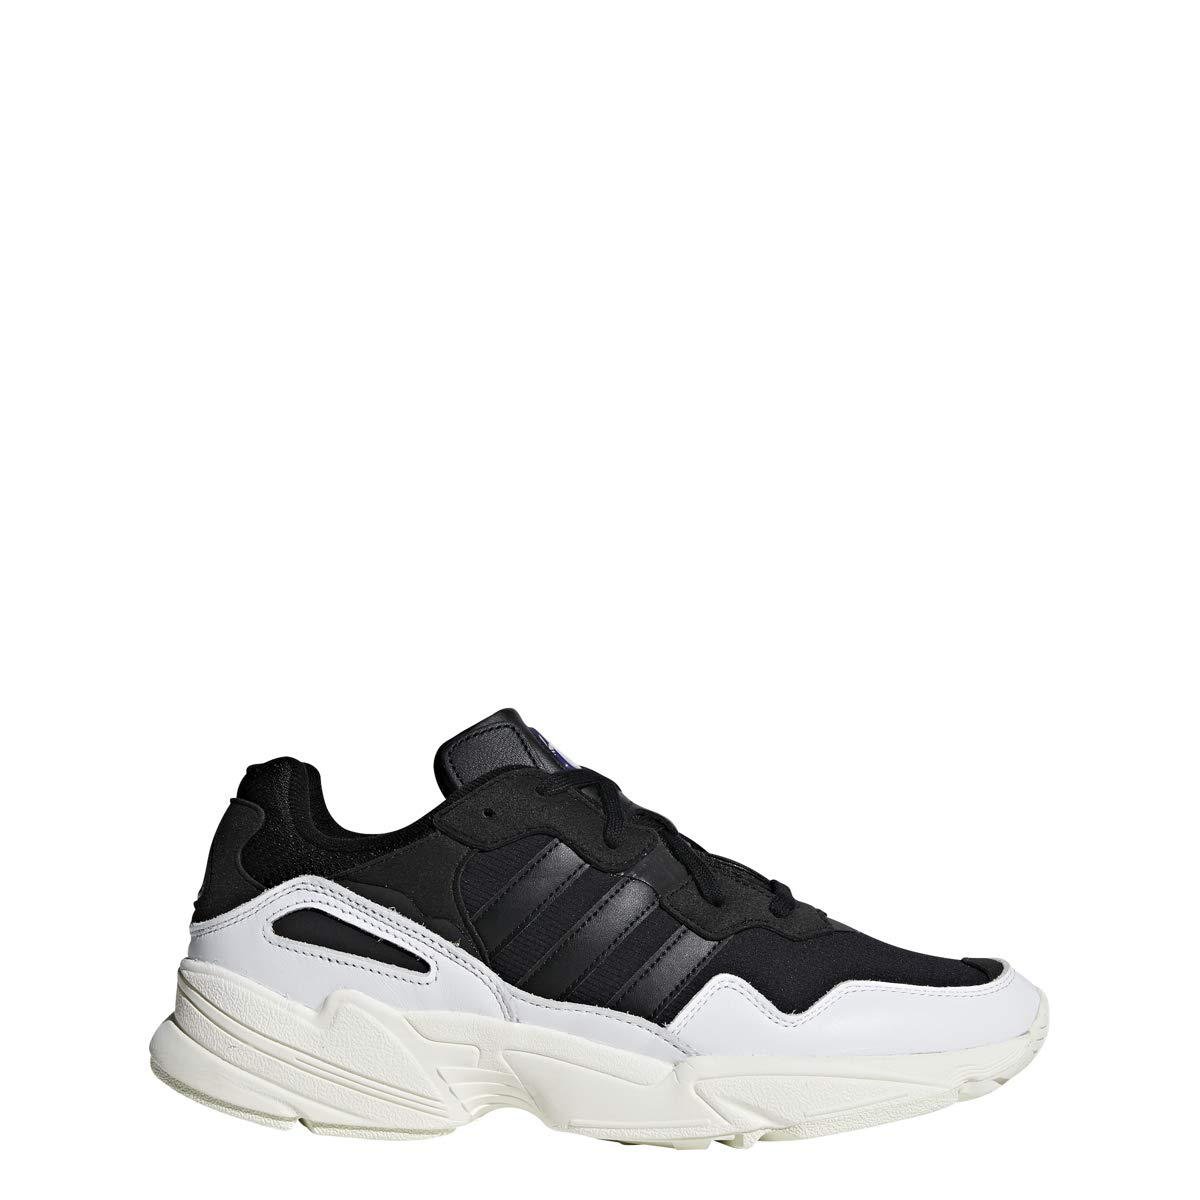 pretty nice 60d76 a27ee Amazon.com   adidas Originals Yung-96 - Men s White Black Off White Nylon  Running Shoes   Shoes